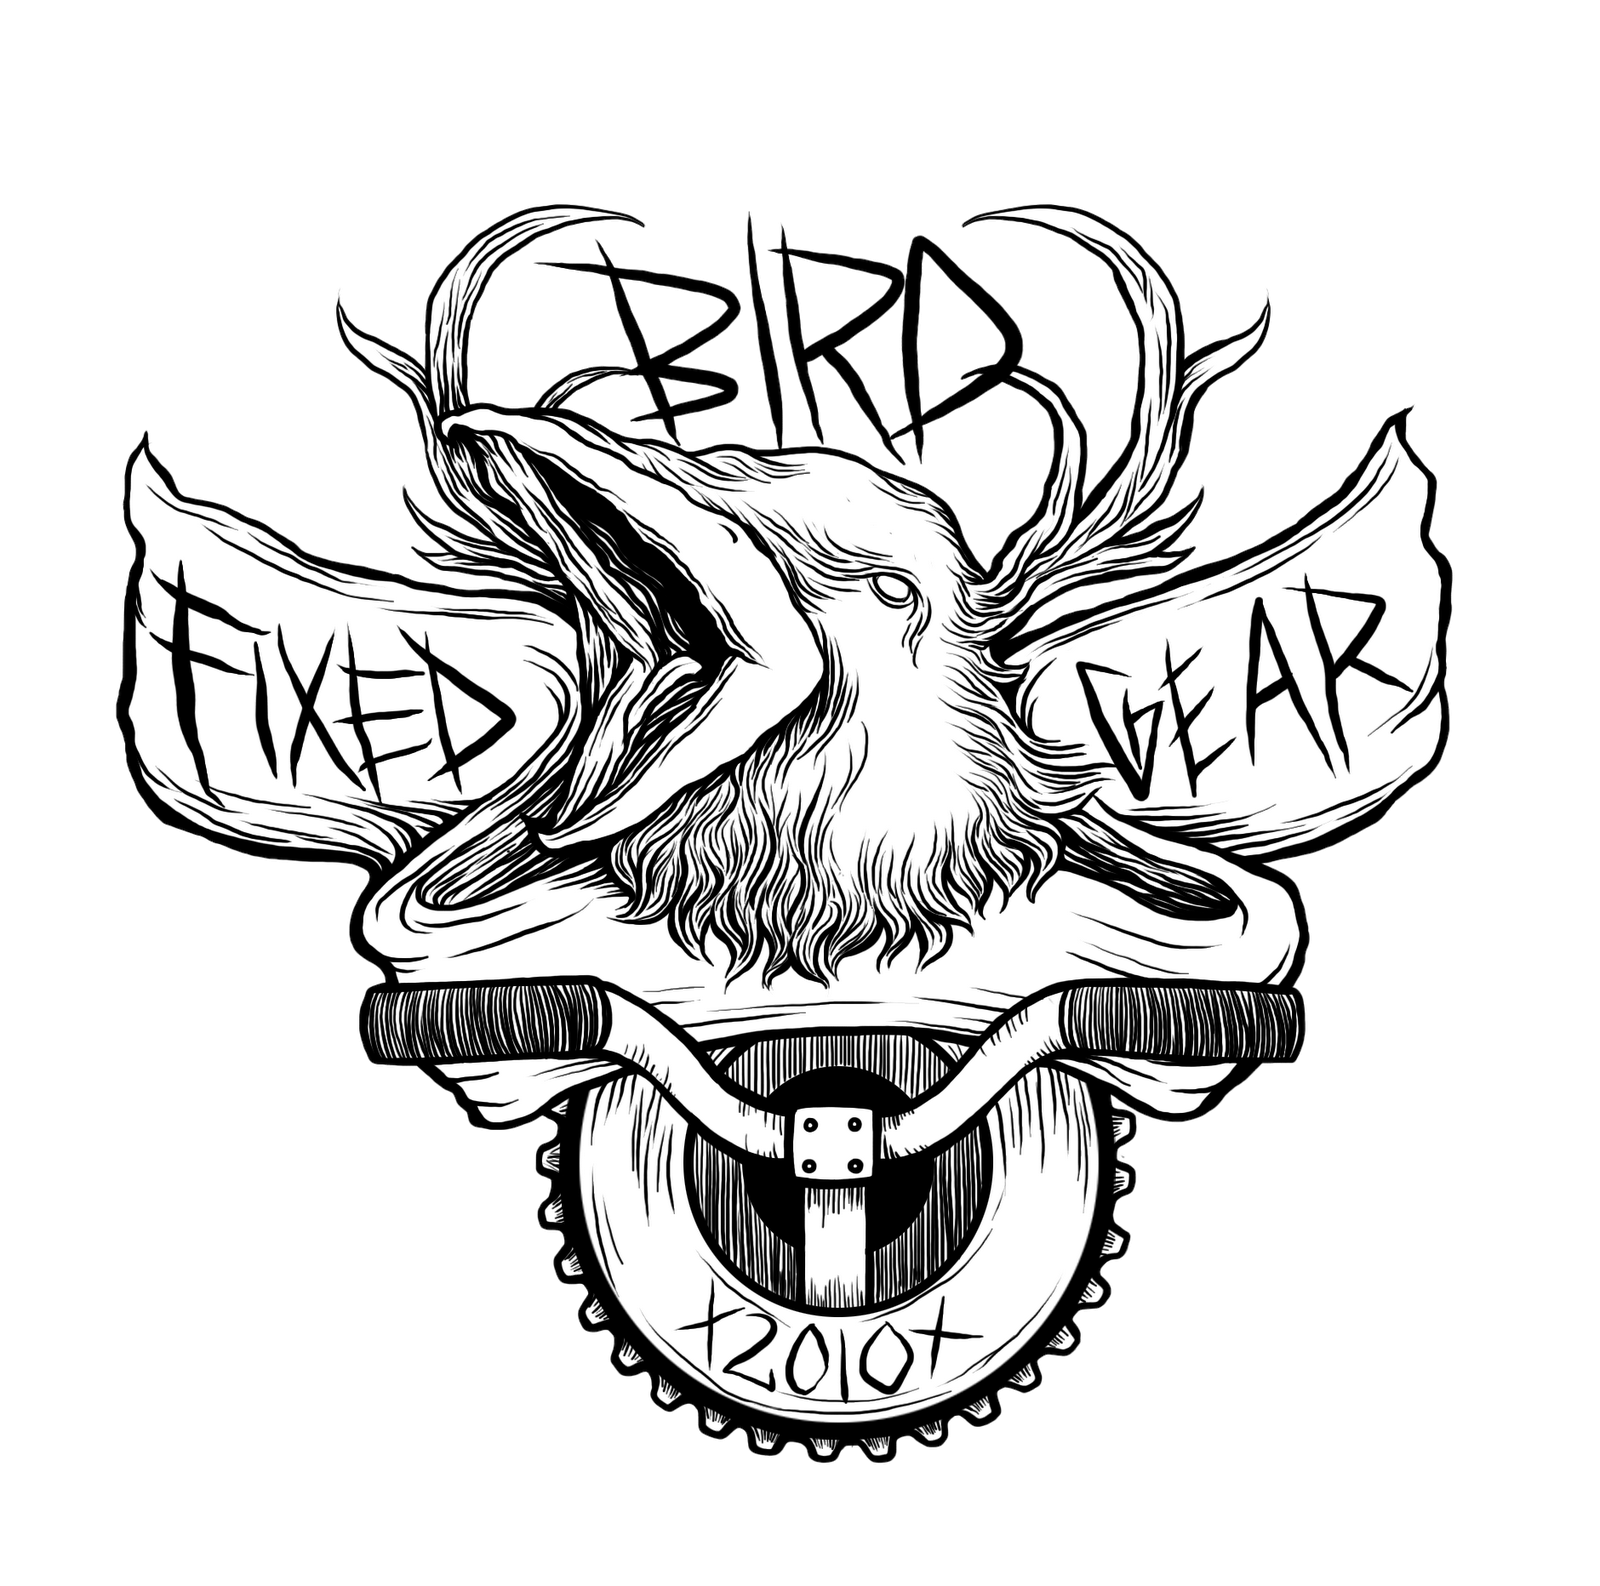 Drawn vans fixed gear #15